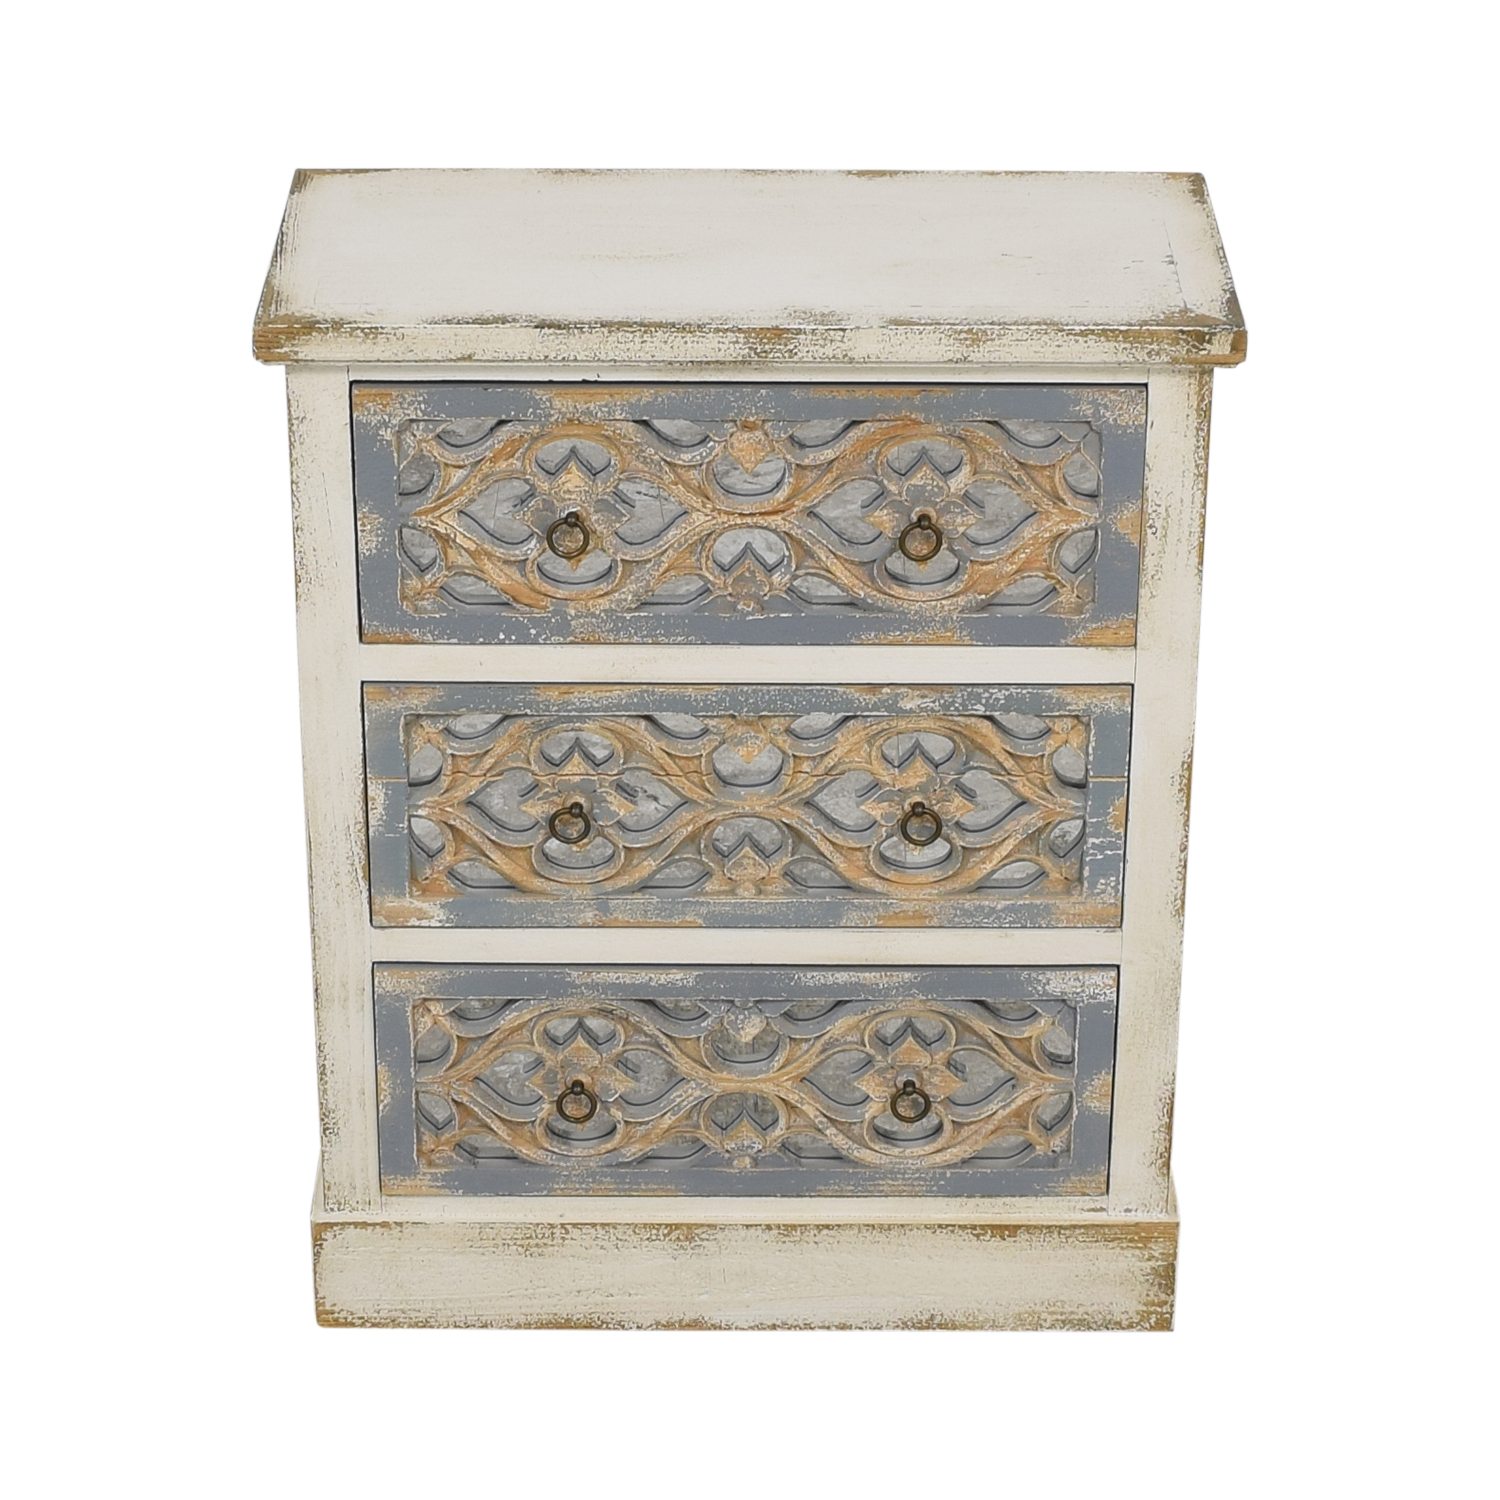 Pier 1 Pier 1 Cosette Antiqued Mirrored Chest white and blue